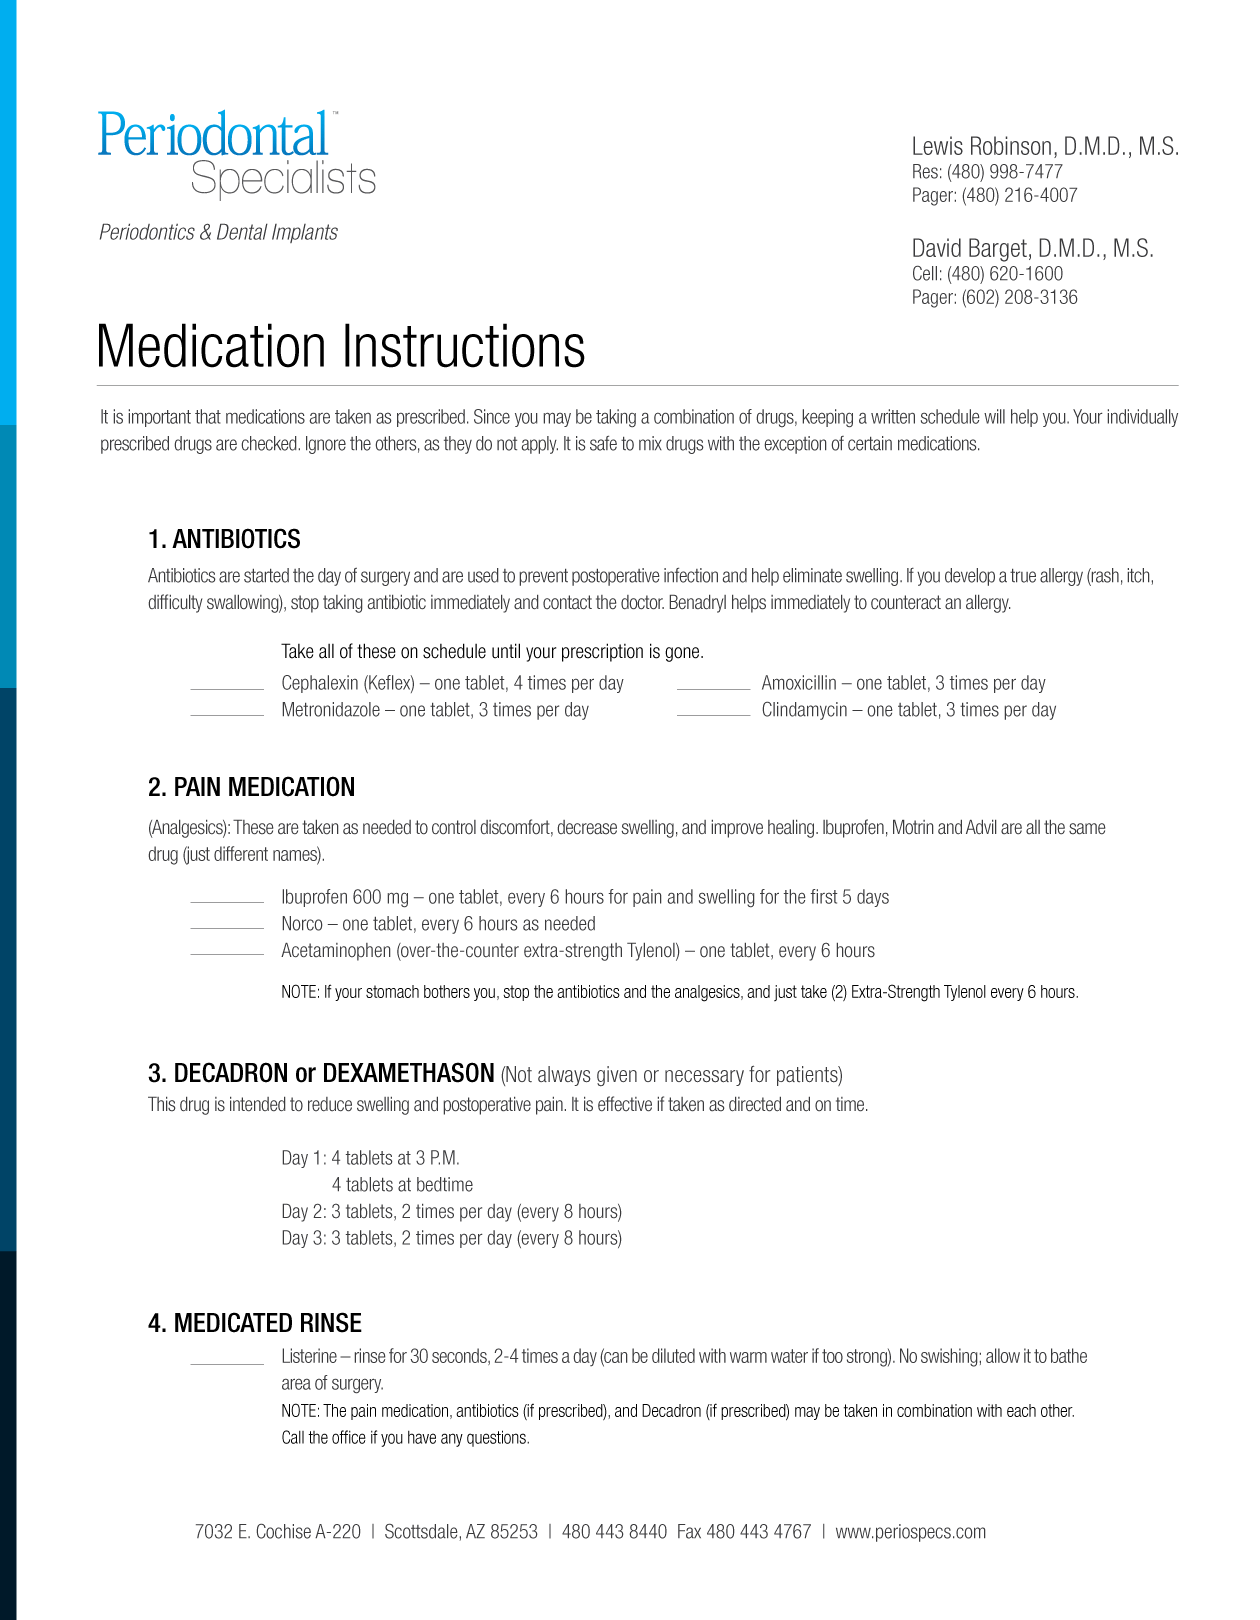 Medication Instructions